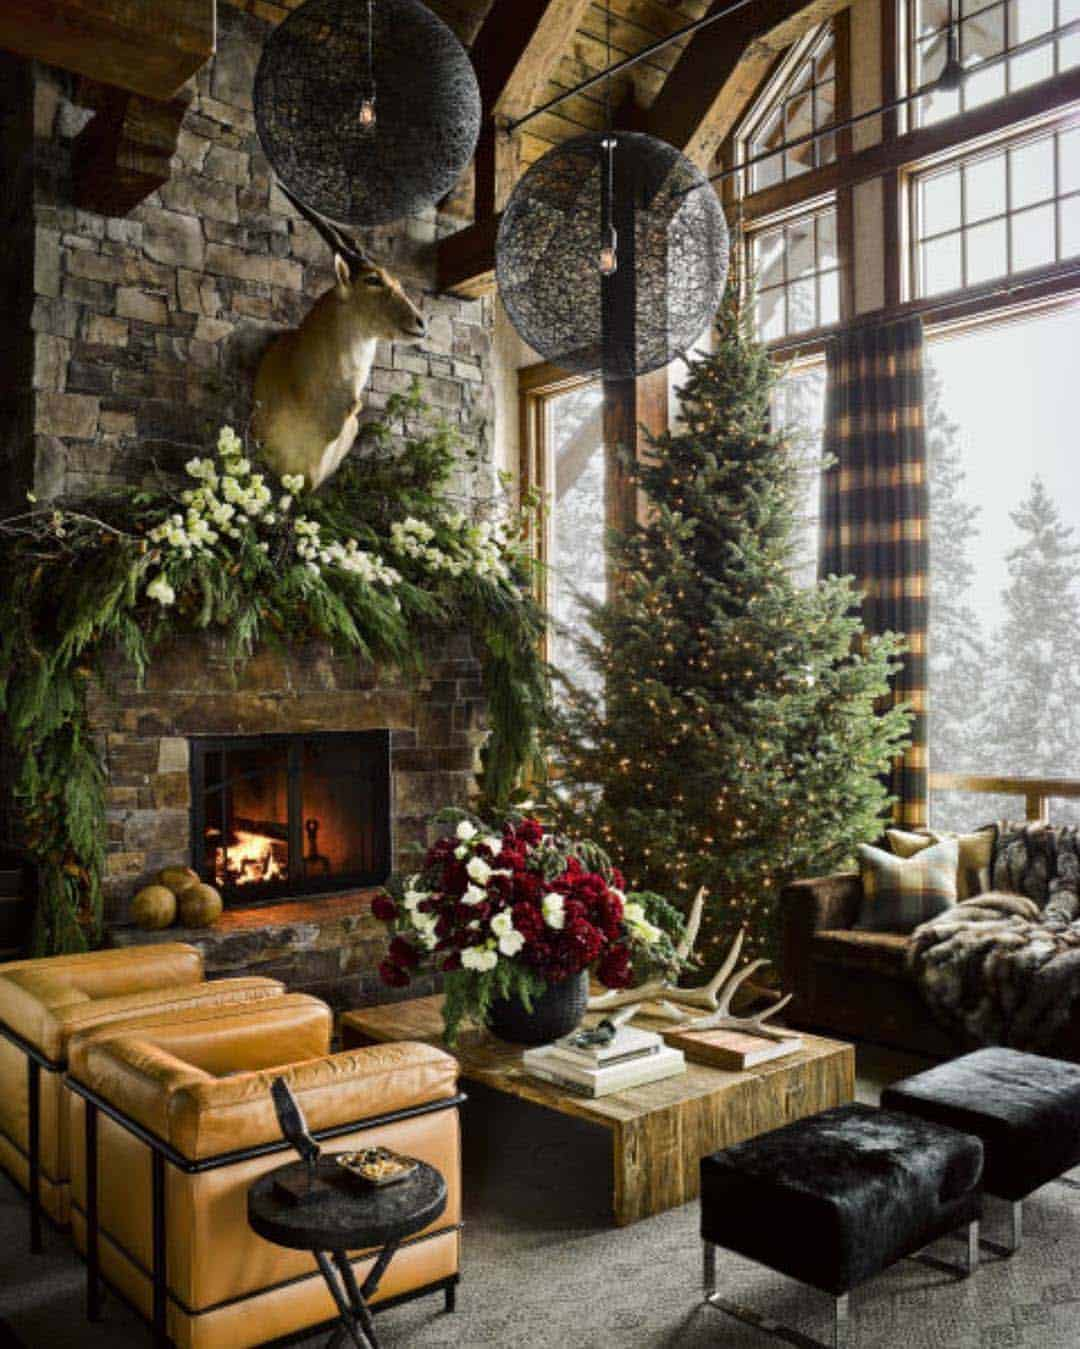 Little Decor Ideas To Make At Home: Montana Guest Retreat Gets A Fabulous Makeover For The